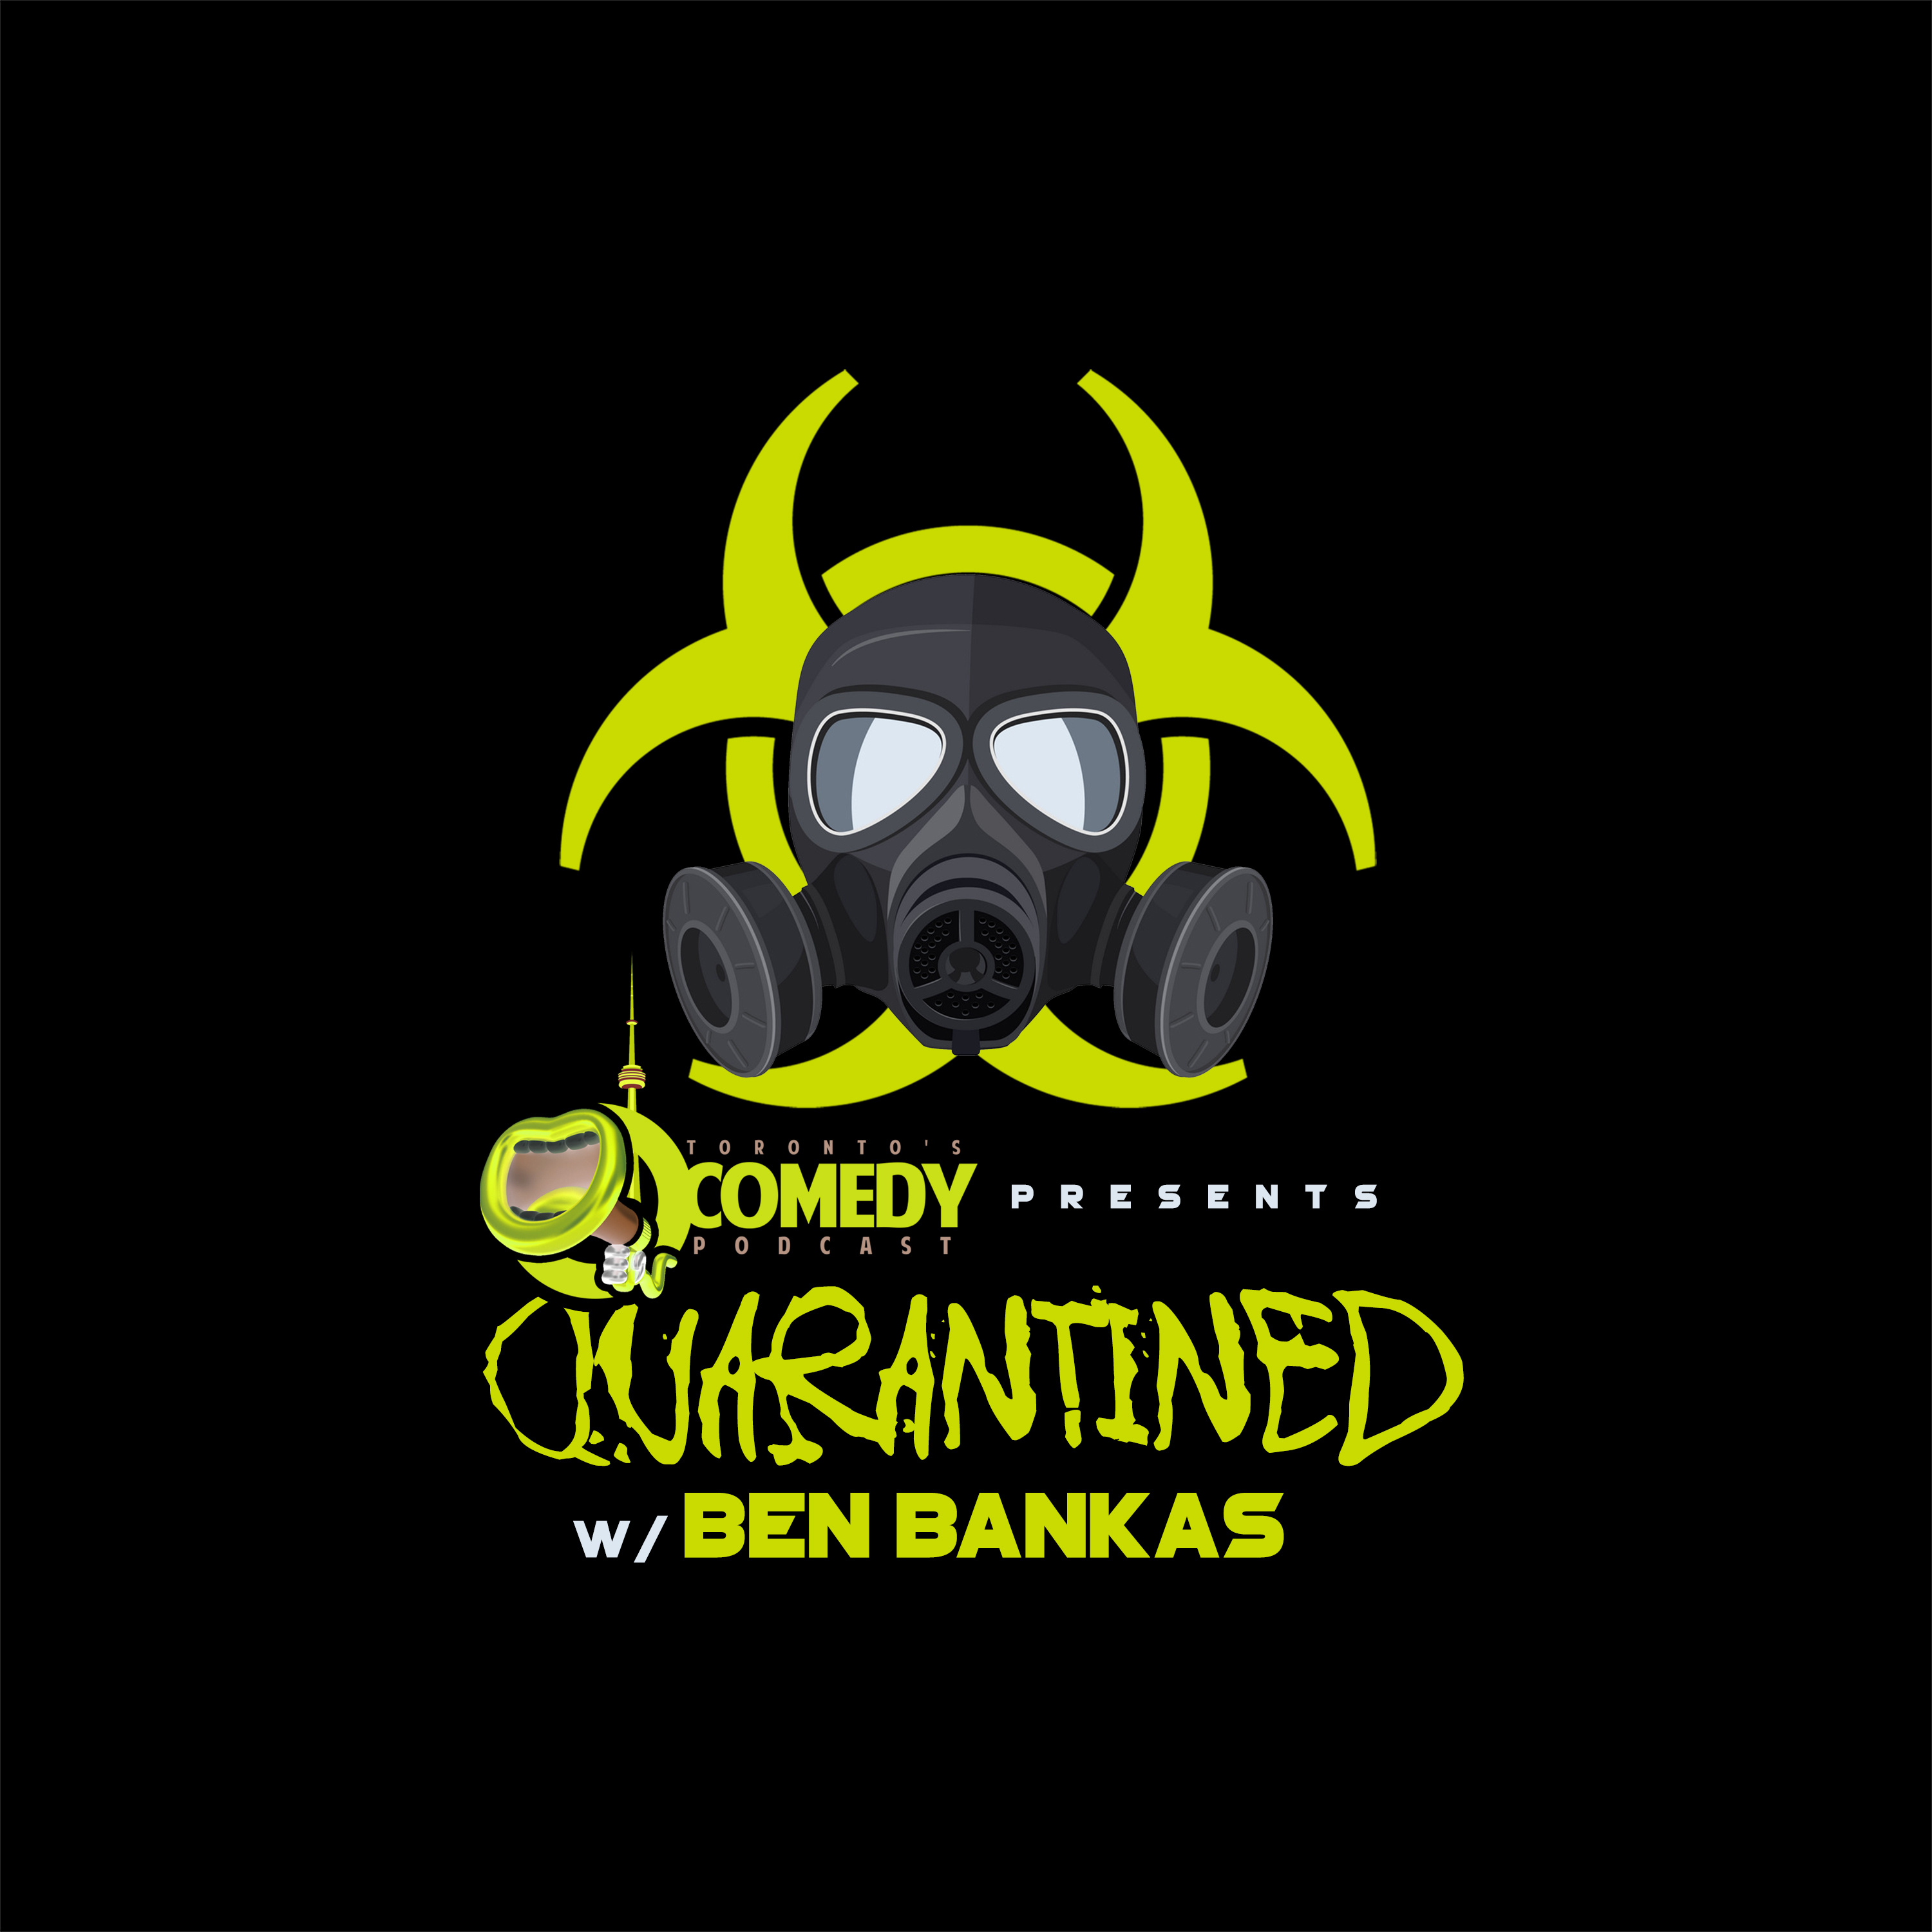 #37 Toronto Comedy Podcast Network Presents: Quarantined with Ben Bankas - #16 Aaron Berg